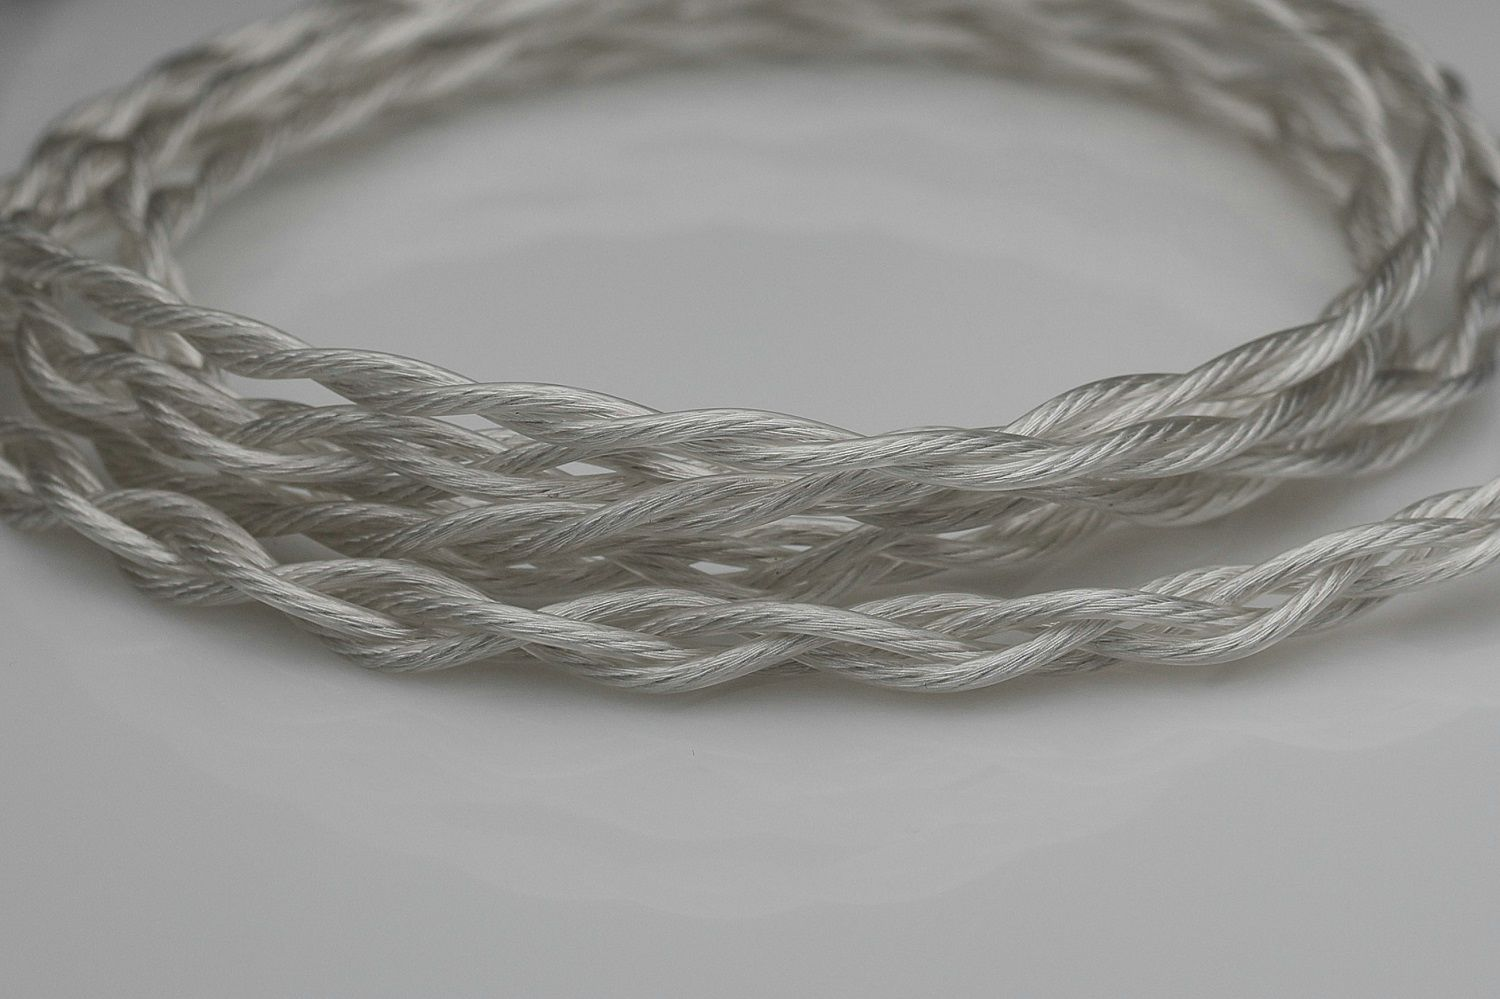 new 6n awg20 pure silver multistrand litz with graphene upgrade cable by Lavricables